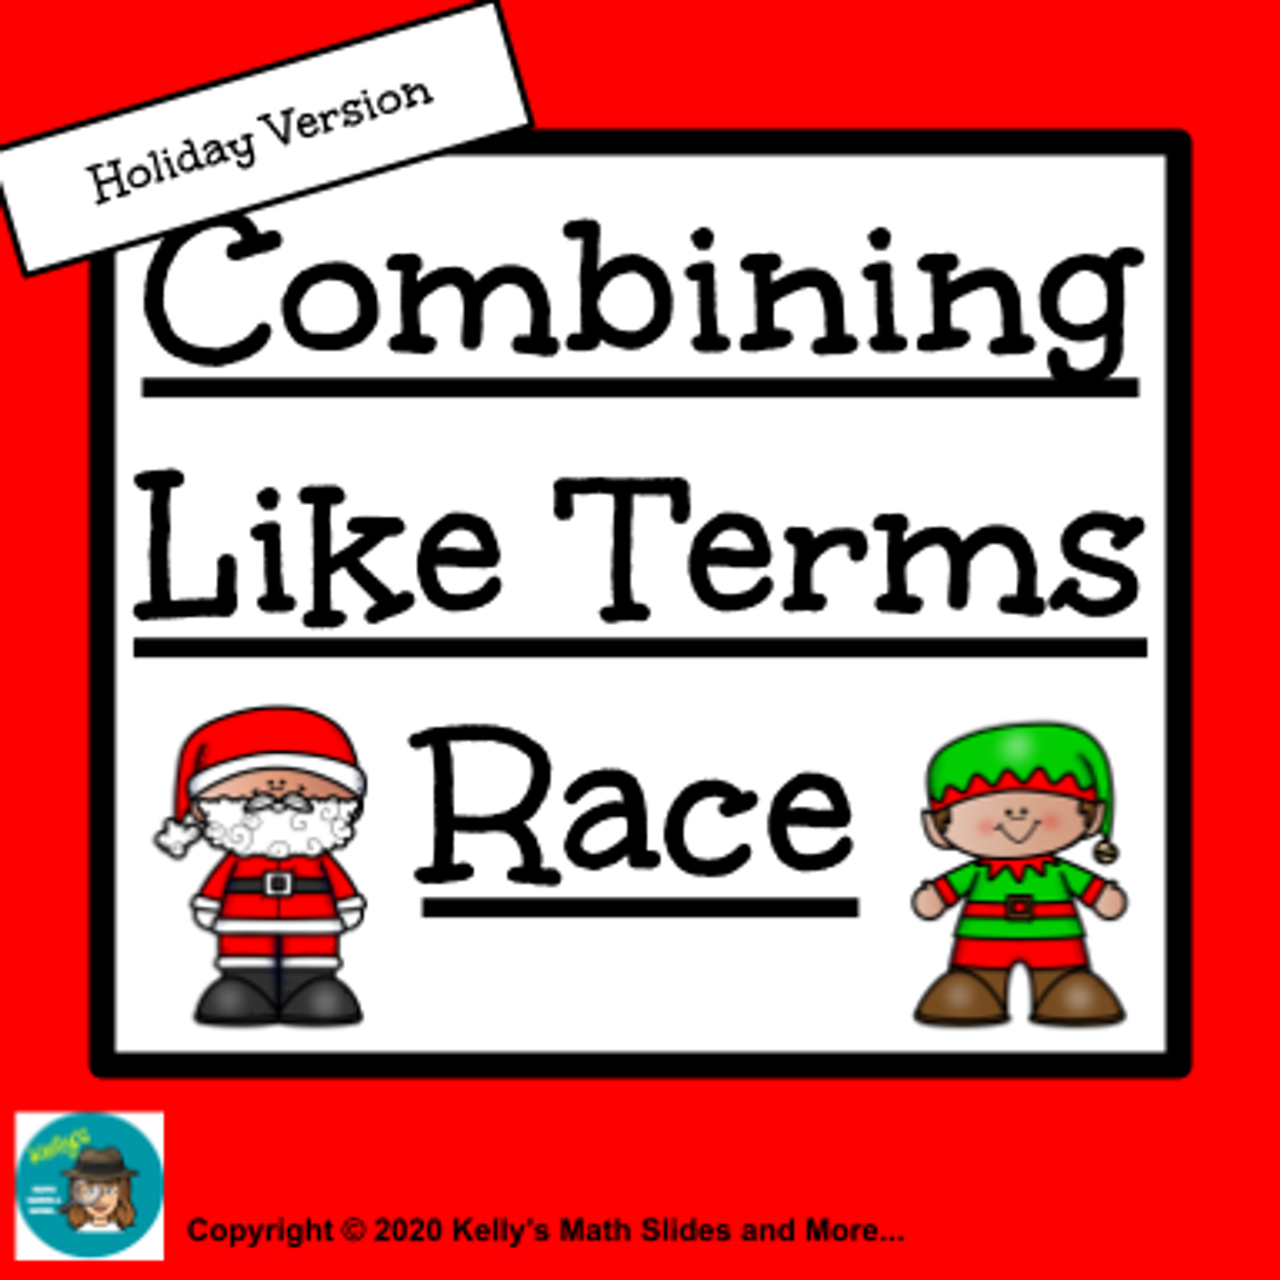 Holidays Version - Combining Like Terms Race